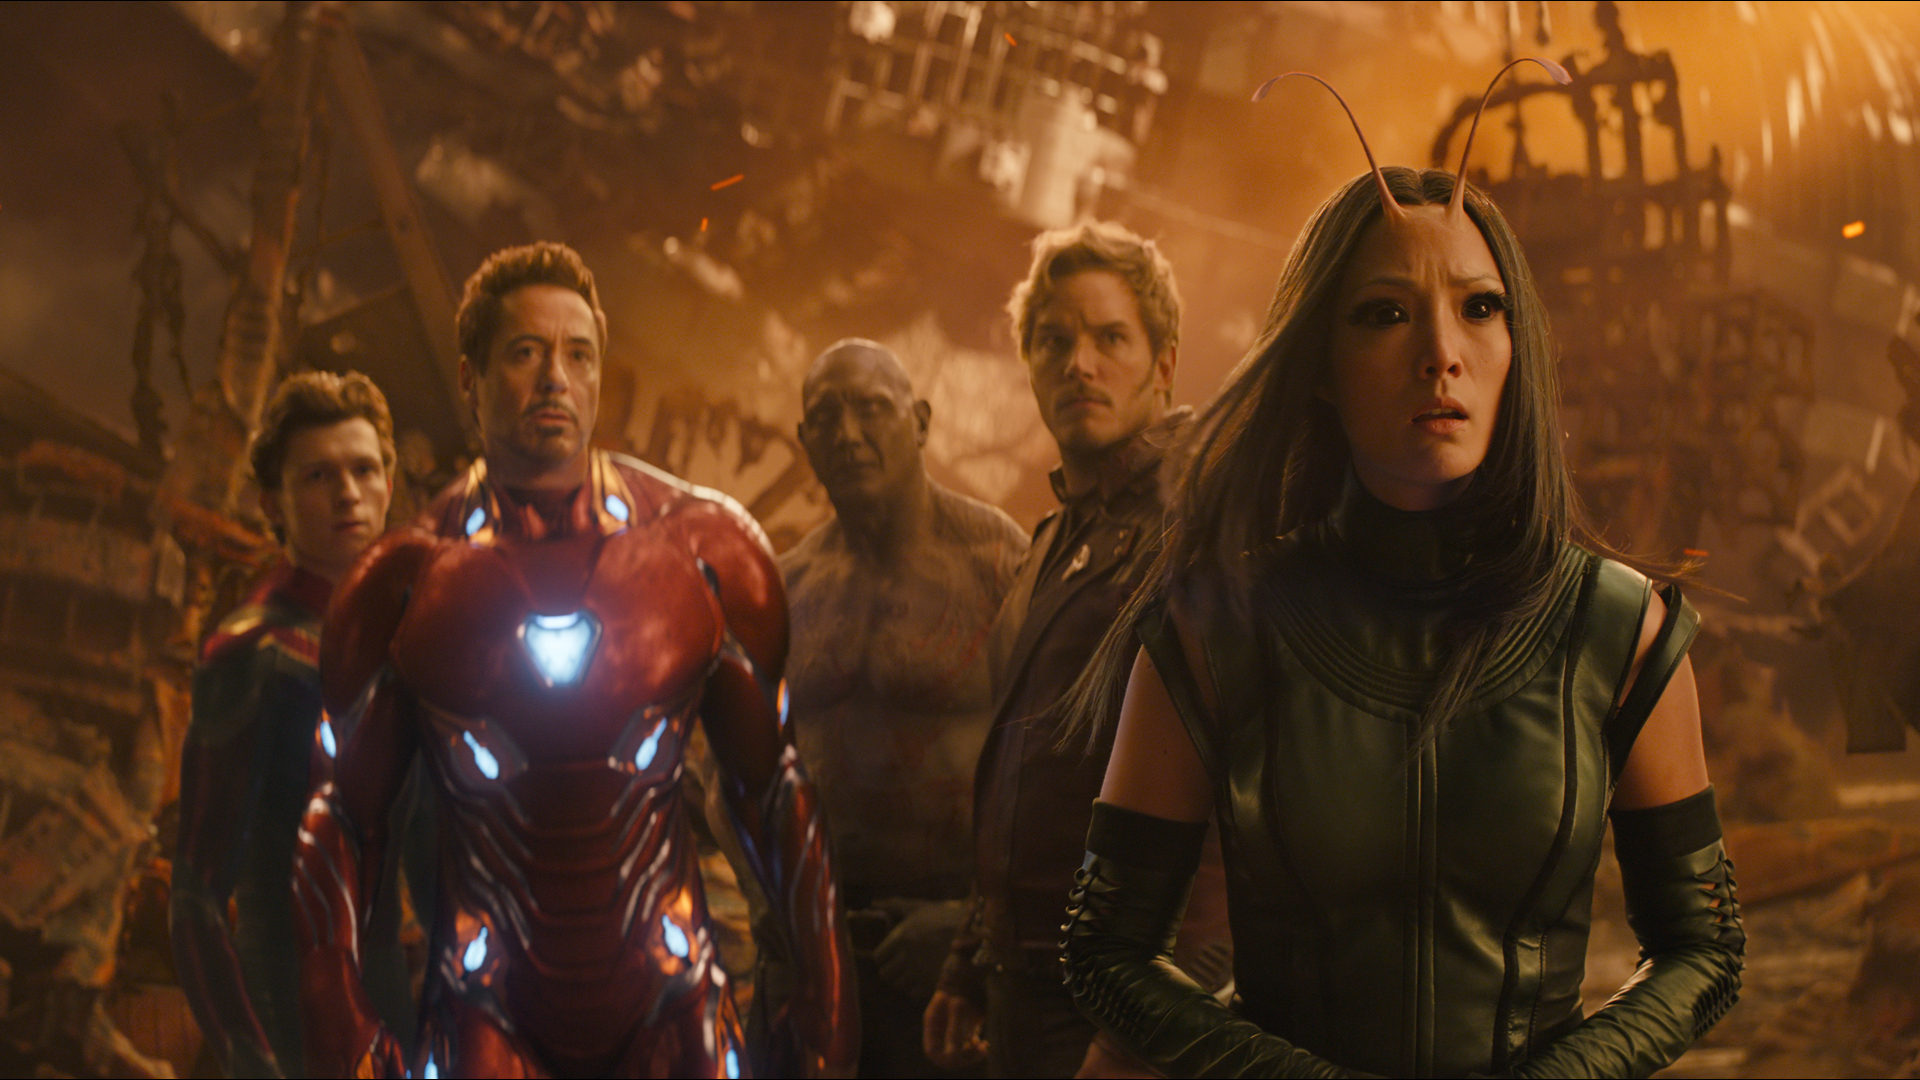 Review: 'Infinity War' is a mind-boggling culmination of Marvel's 'Avengers Initiative'